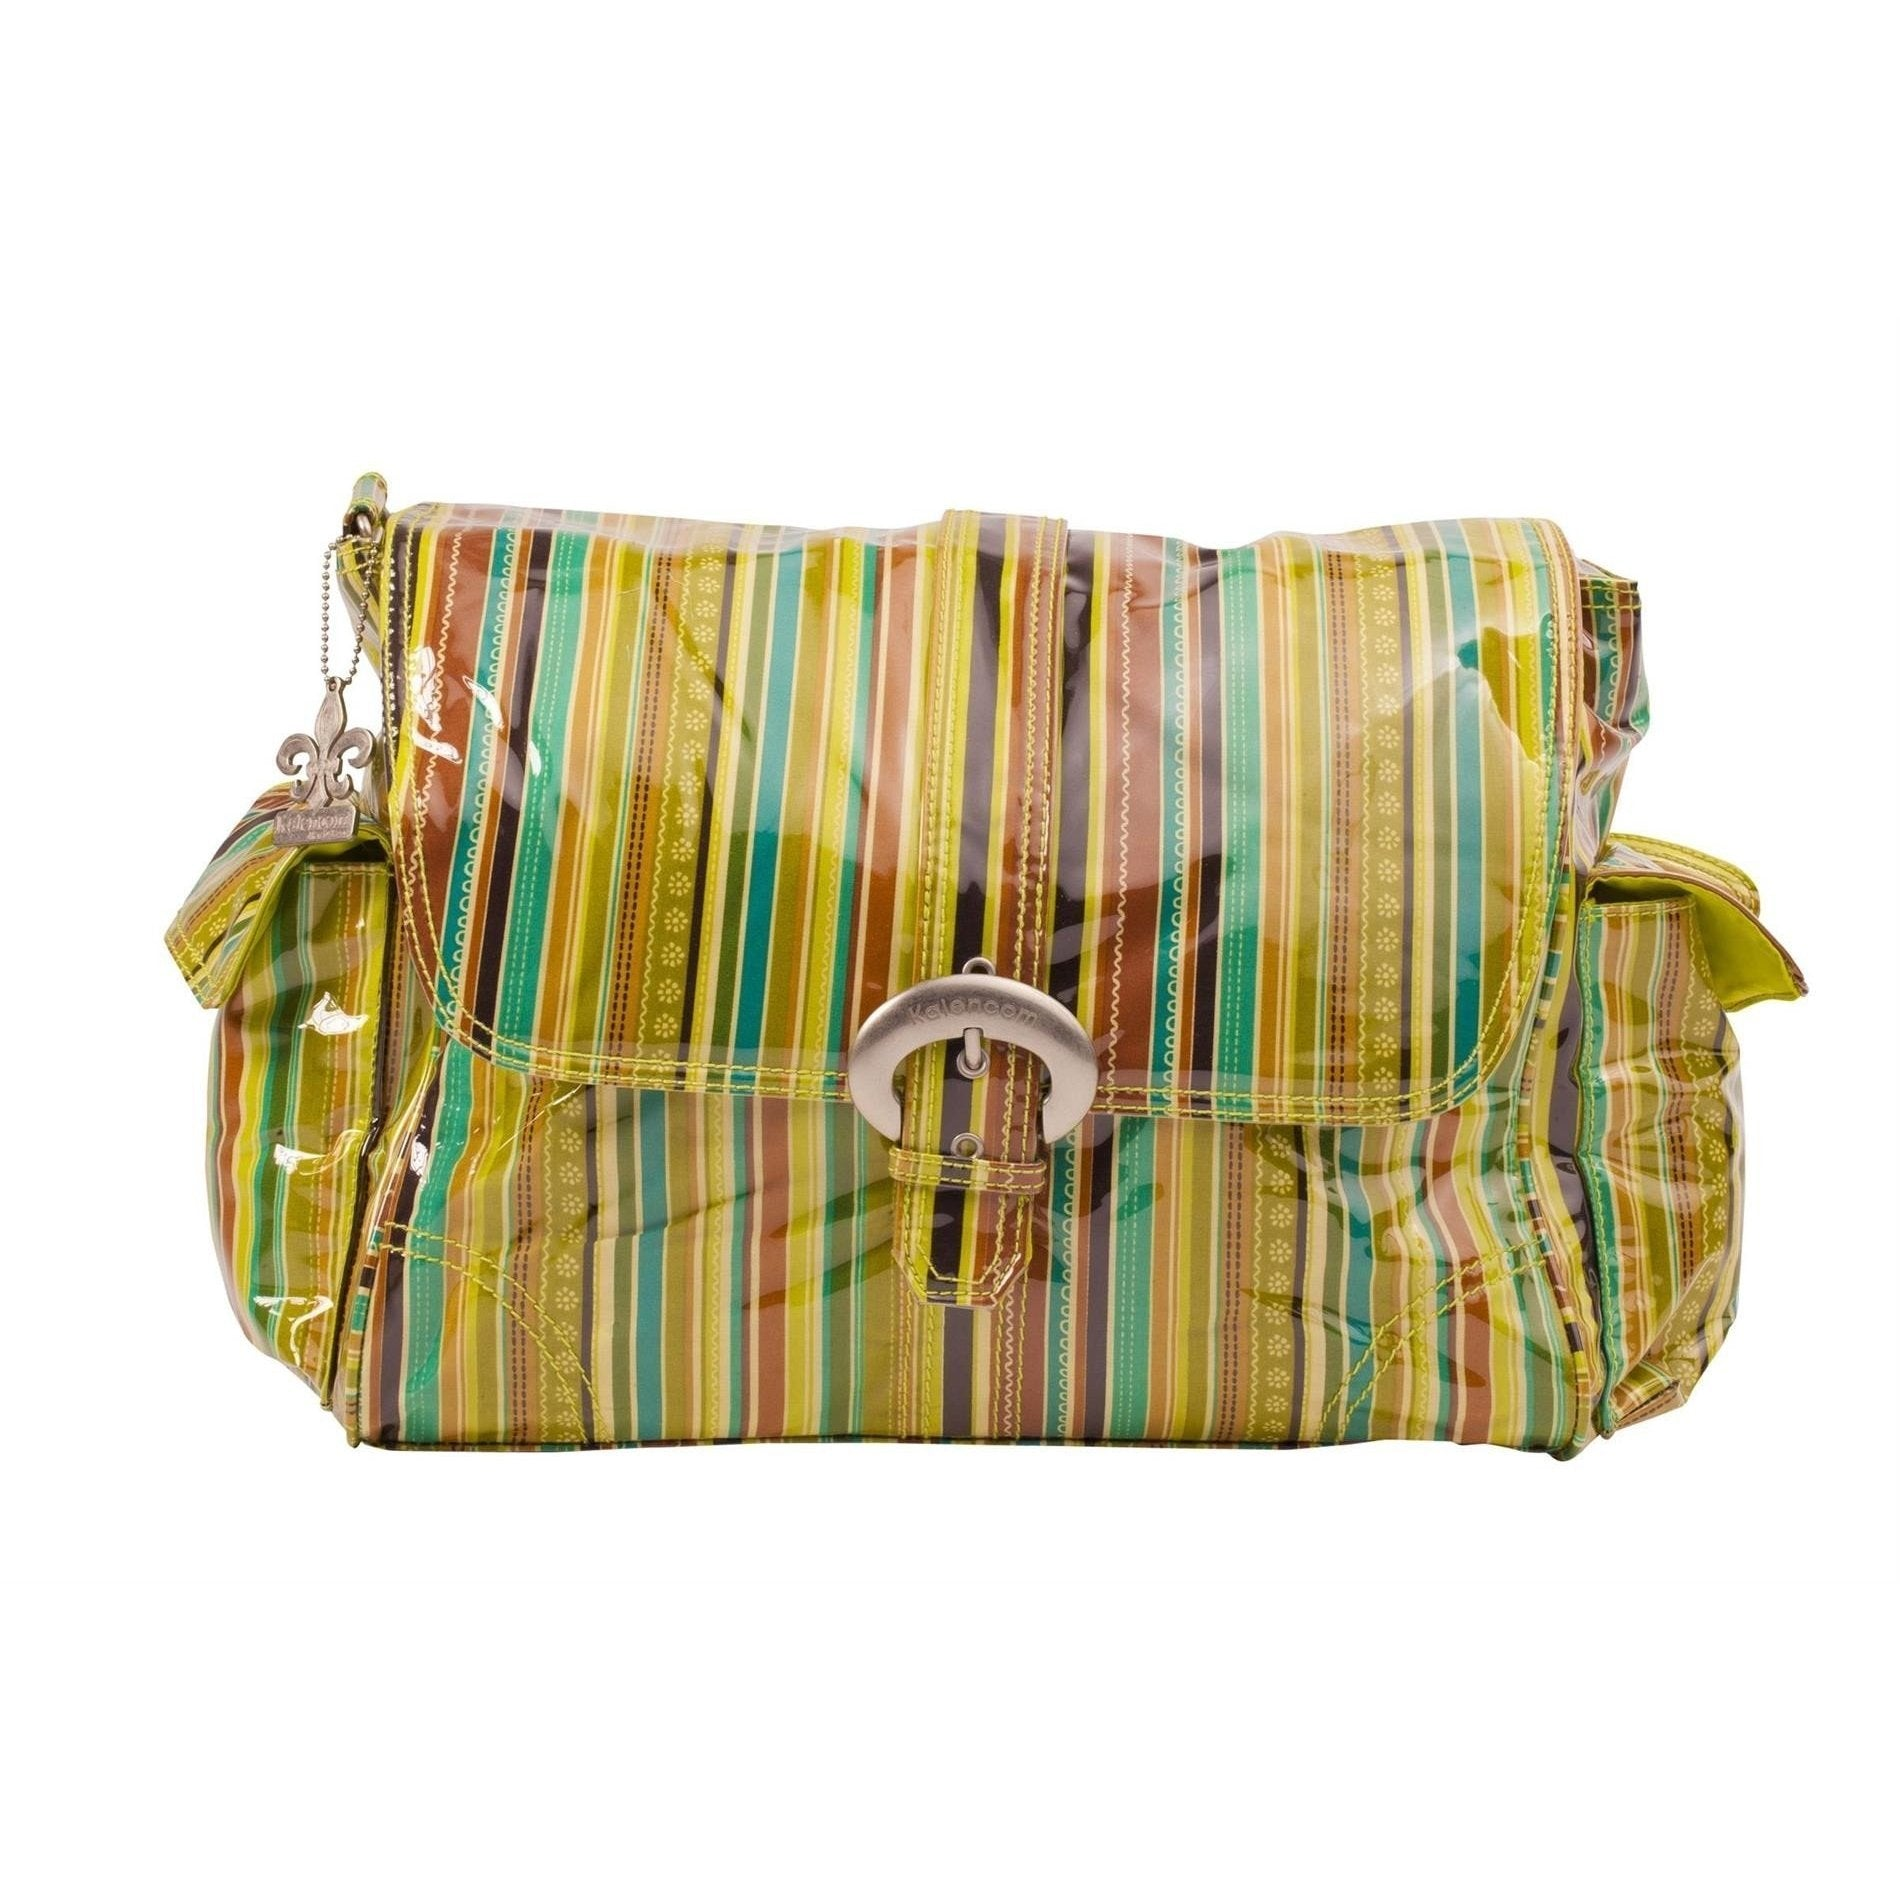 Pretty Stripes - Pistachio Laminated Buckle Diaper Bag | Style 2960 - Kalencom-Diaper Bags-Default-Jack and Jill Boutique